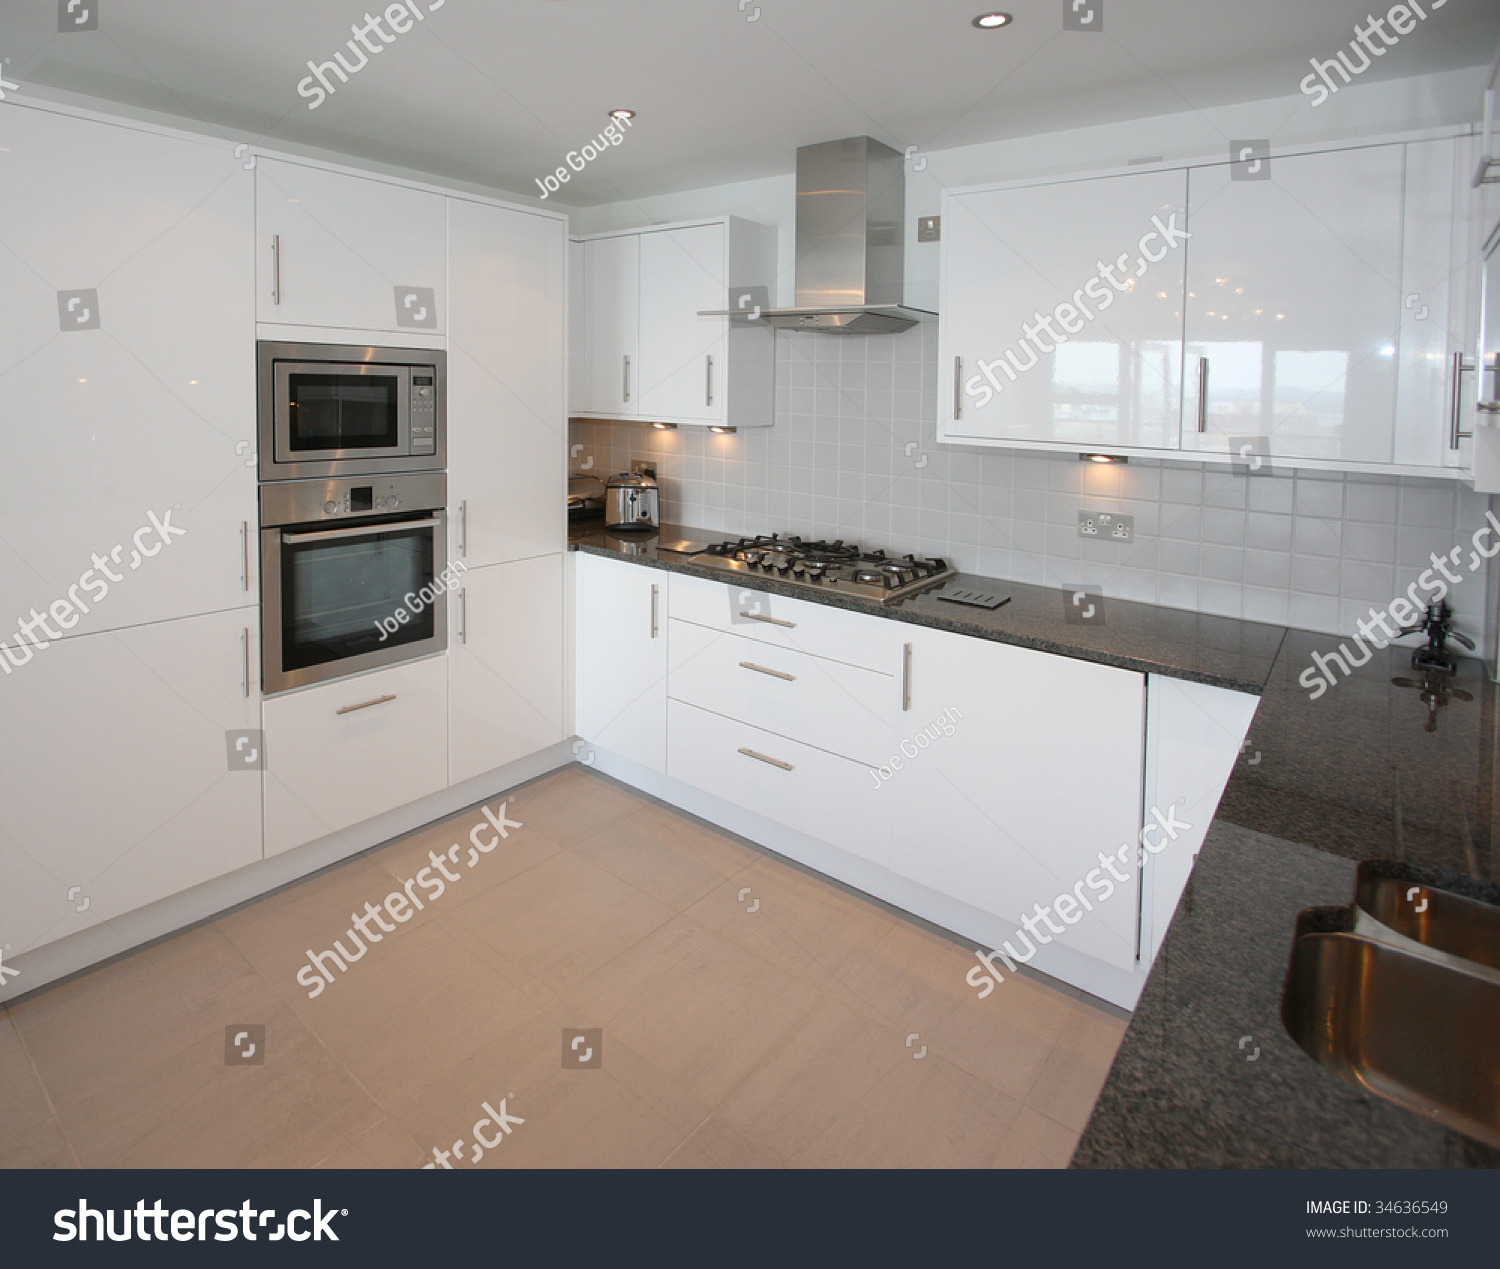 Granite Worktop Kitchen Modern Kitchen With Black Granite Worktop Stock Photo 34636549